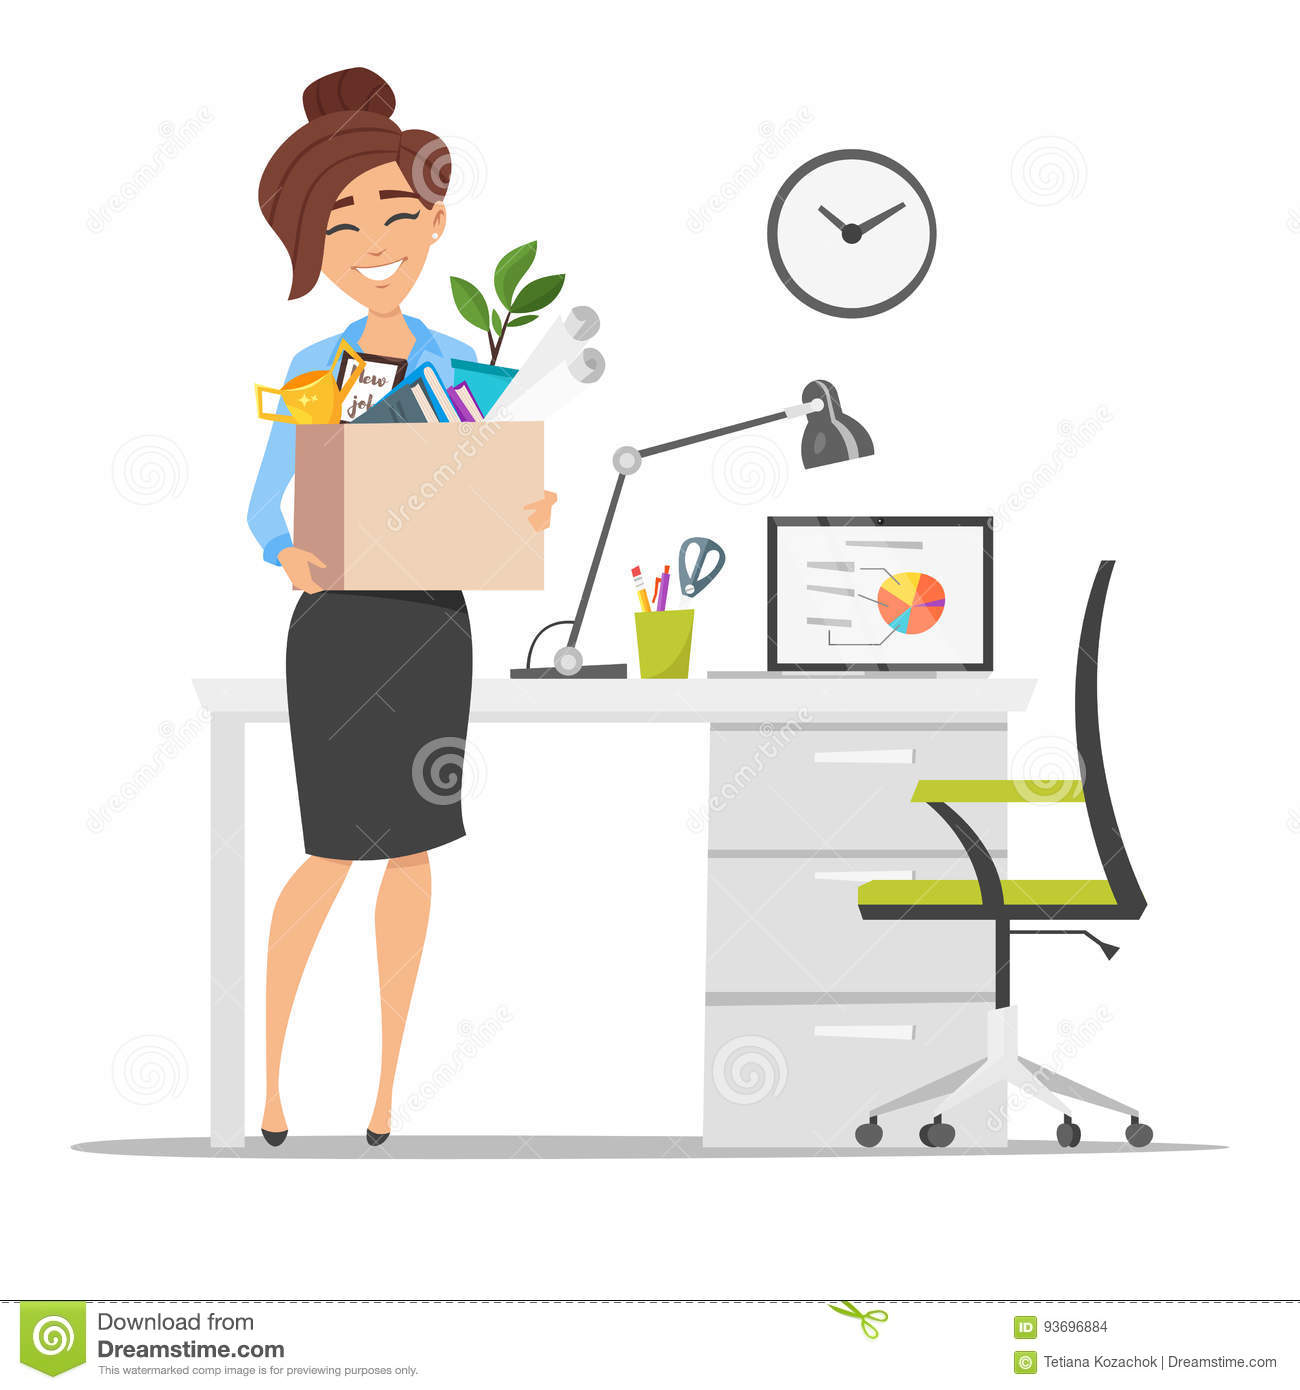 smiling business woman holding cardboard box with work stuff at a